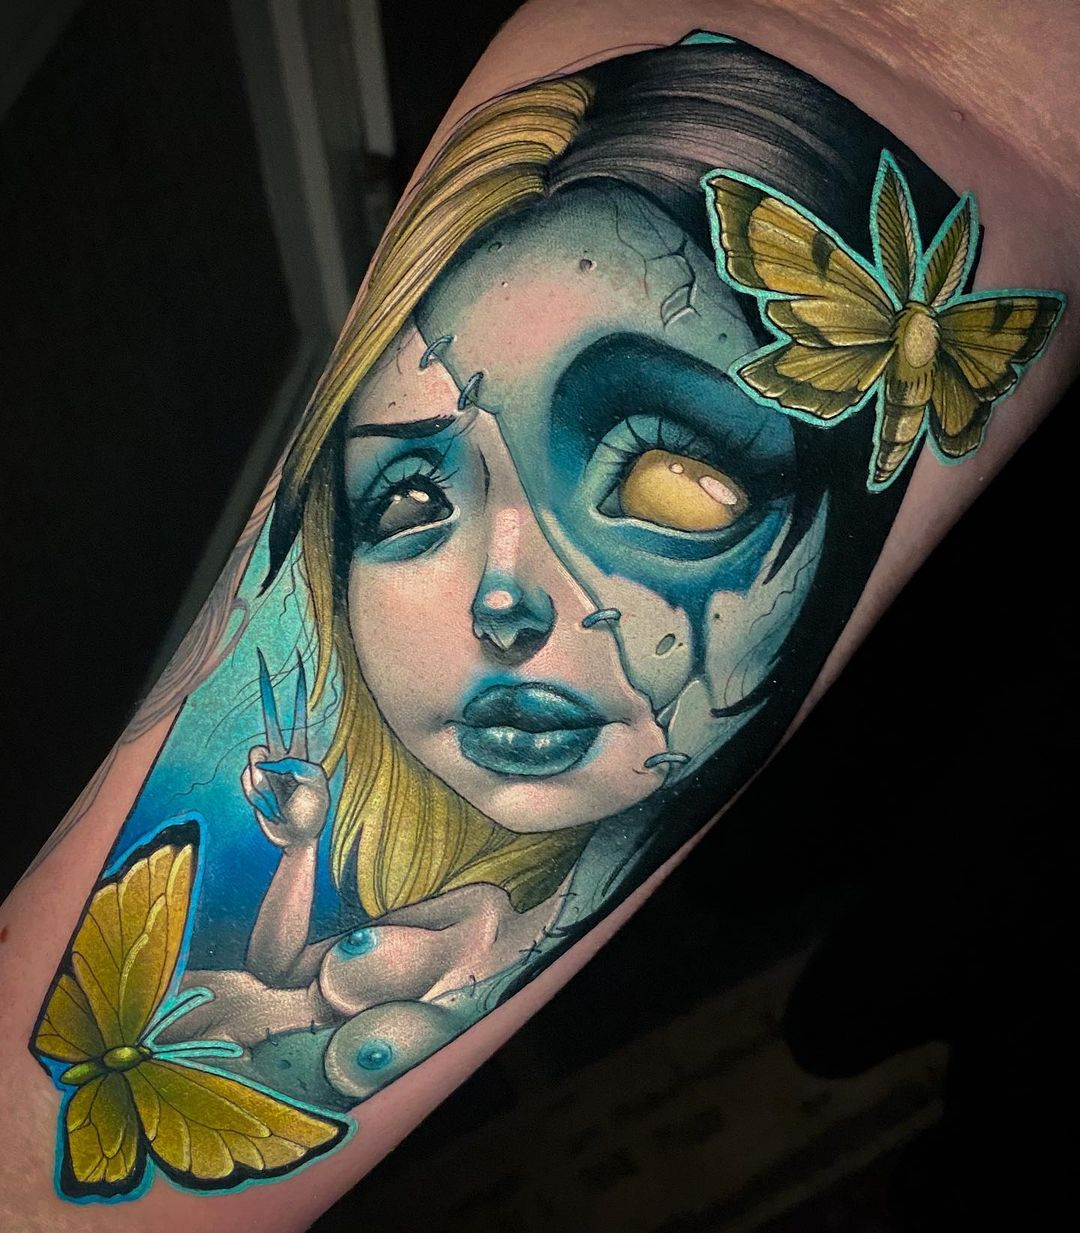 kelly-doty-tattoo-artist-bride-corpse